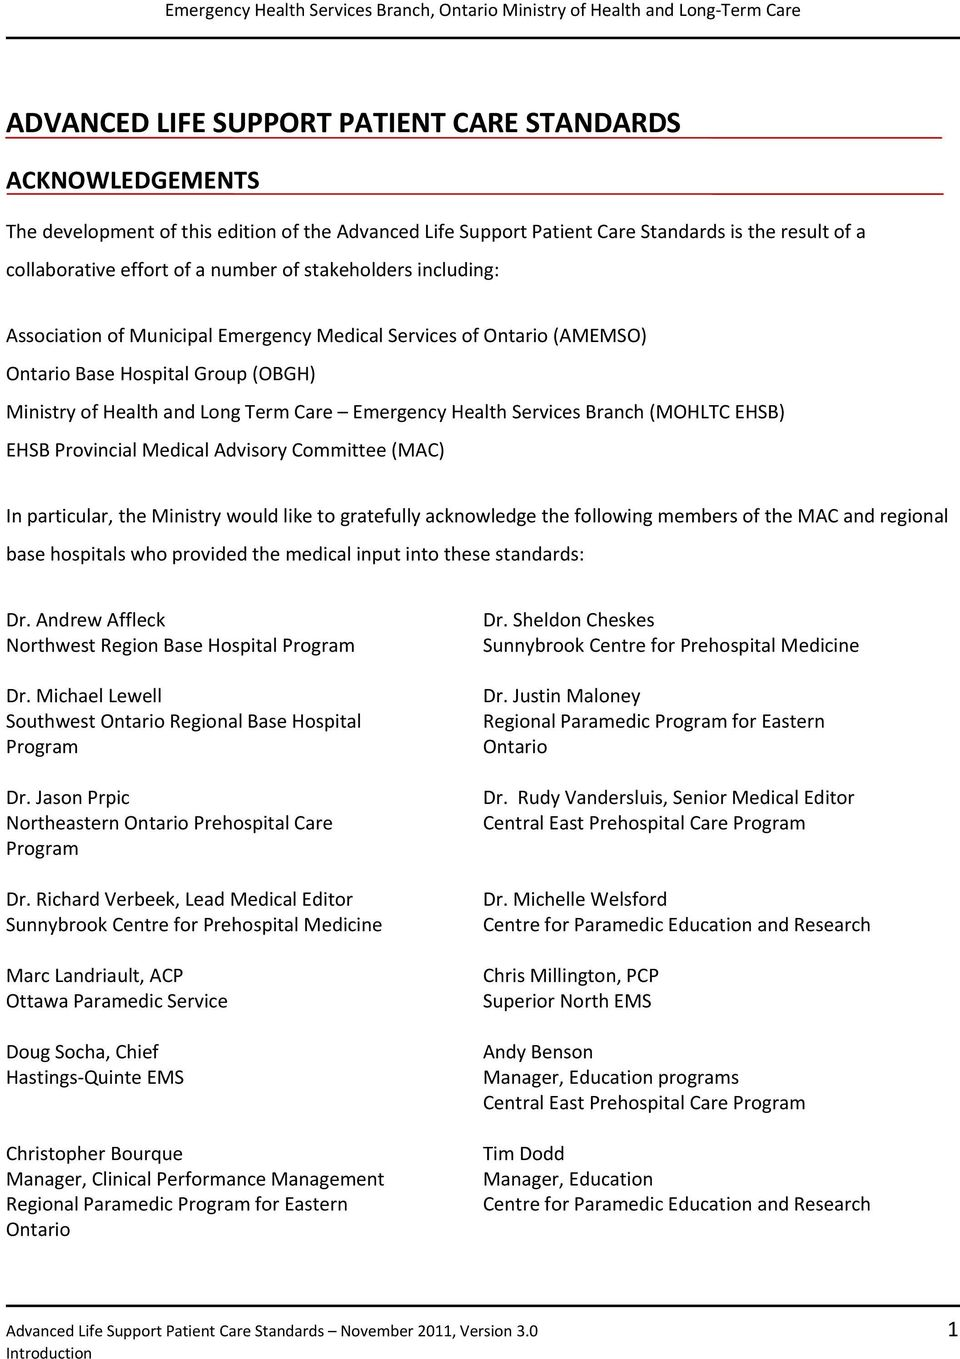 Branch (MOHLTC EHSB) EHSB Provincial Medical Advisory Committee (MAC) In particular, the Ministry would like to gratefully acknowledge the following members of the MAC and regional base hospitals who